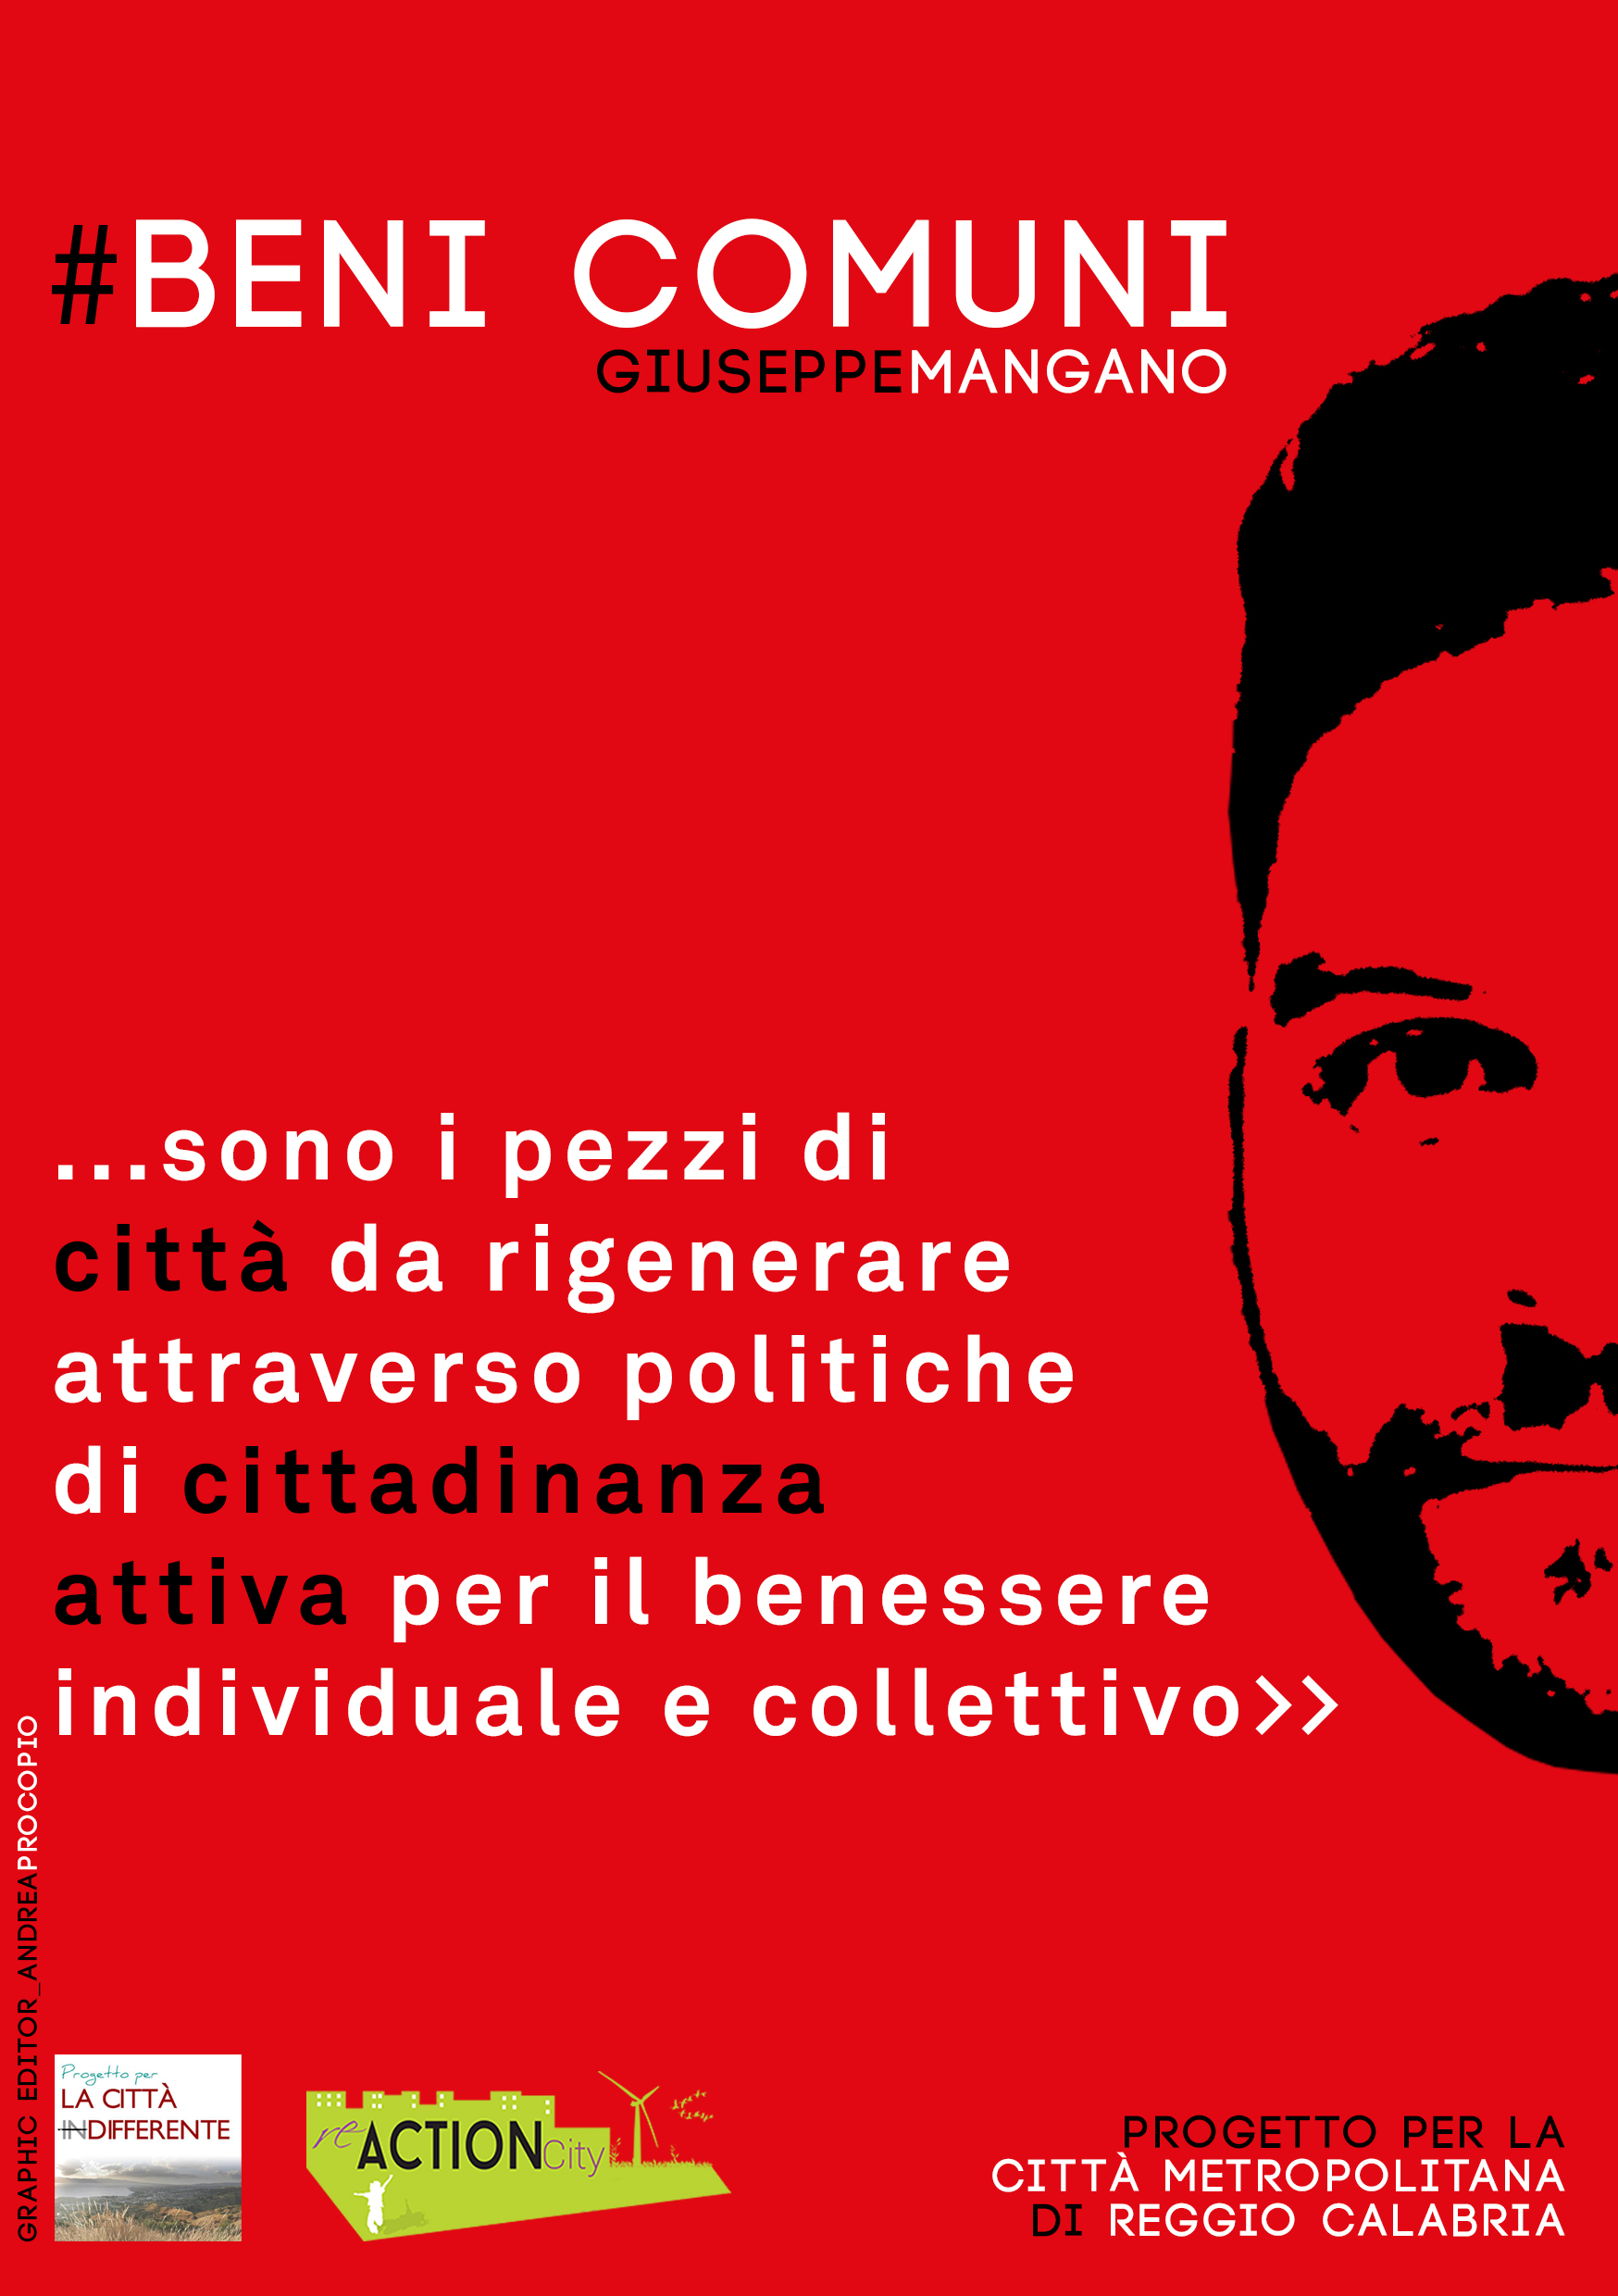 post-it_G.Mangano #beni comuni.jpg